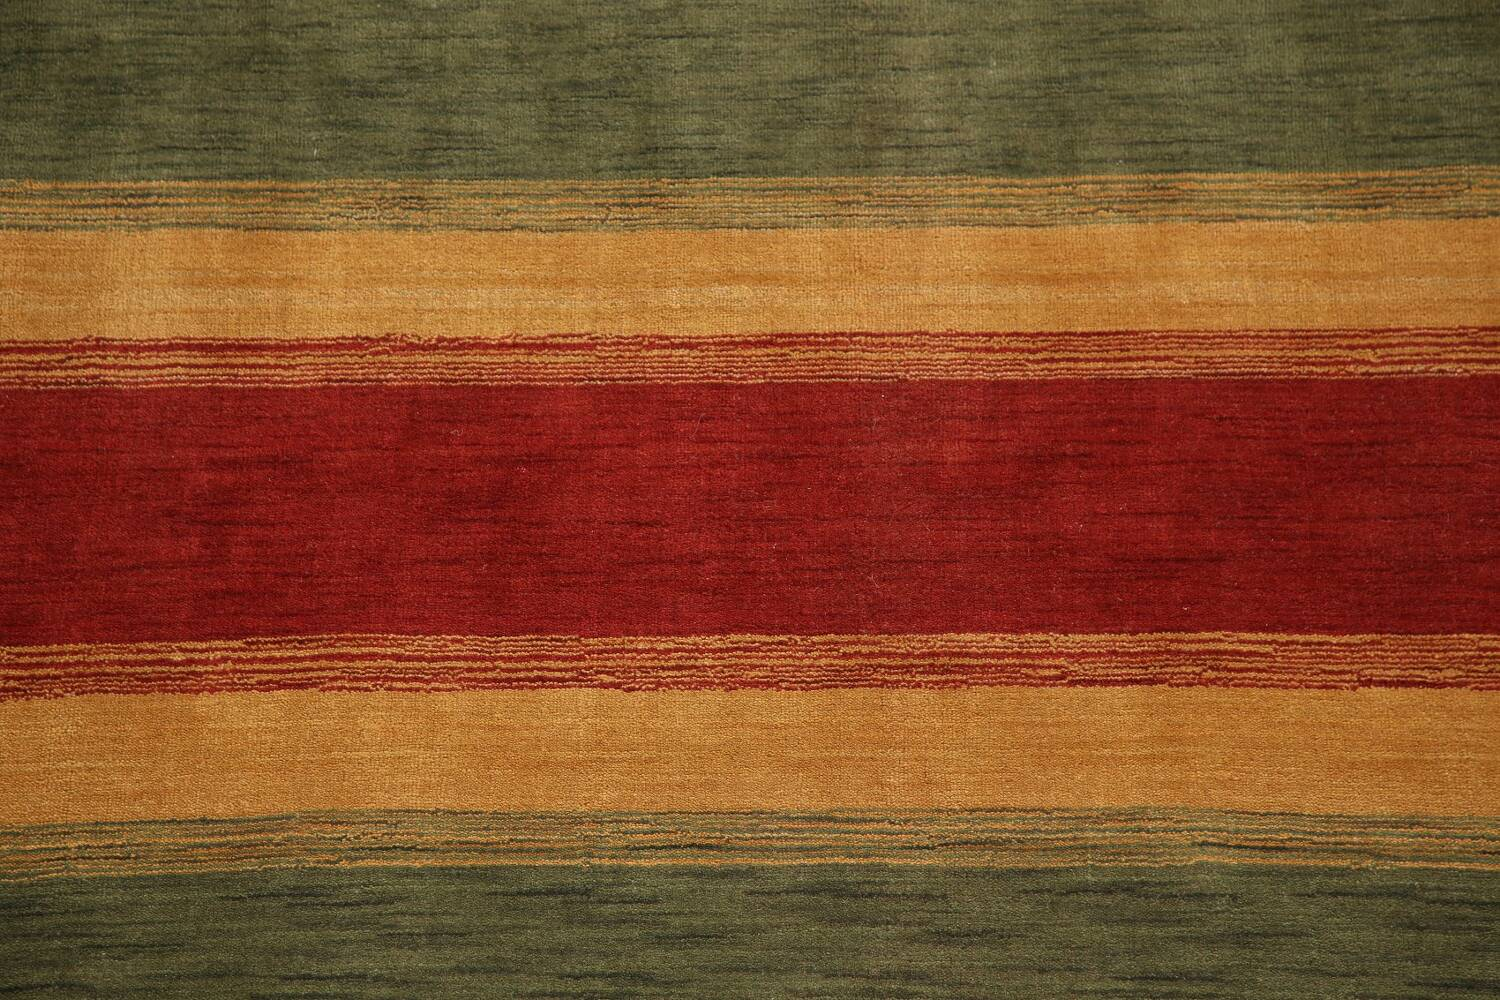 All-Over Striped Gabbeh Oriental Area Rug 9x12 image 4